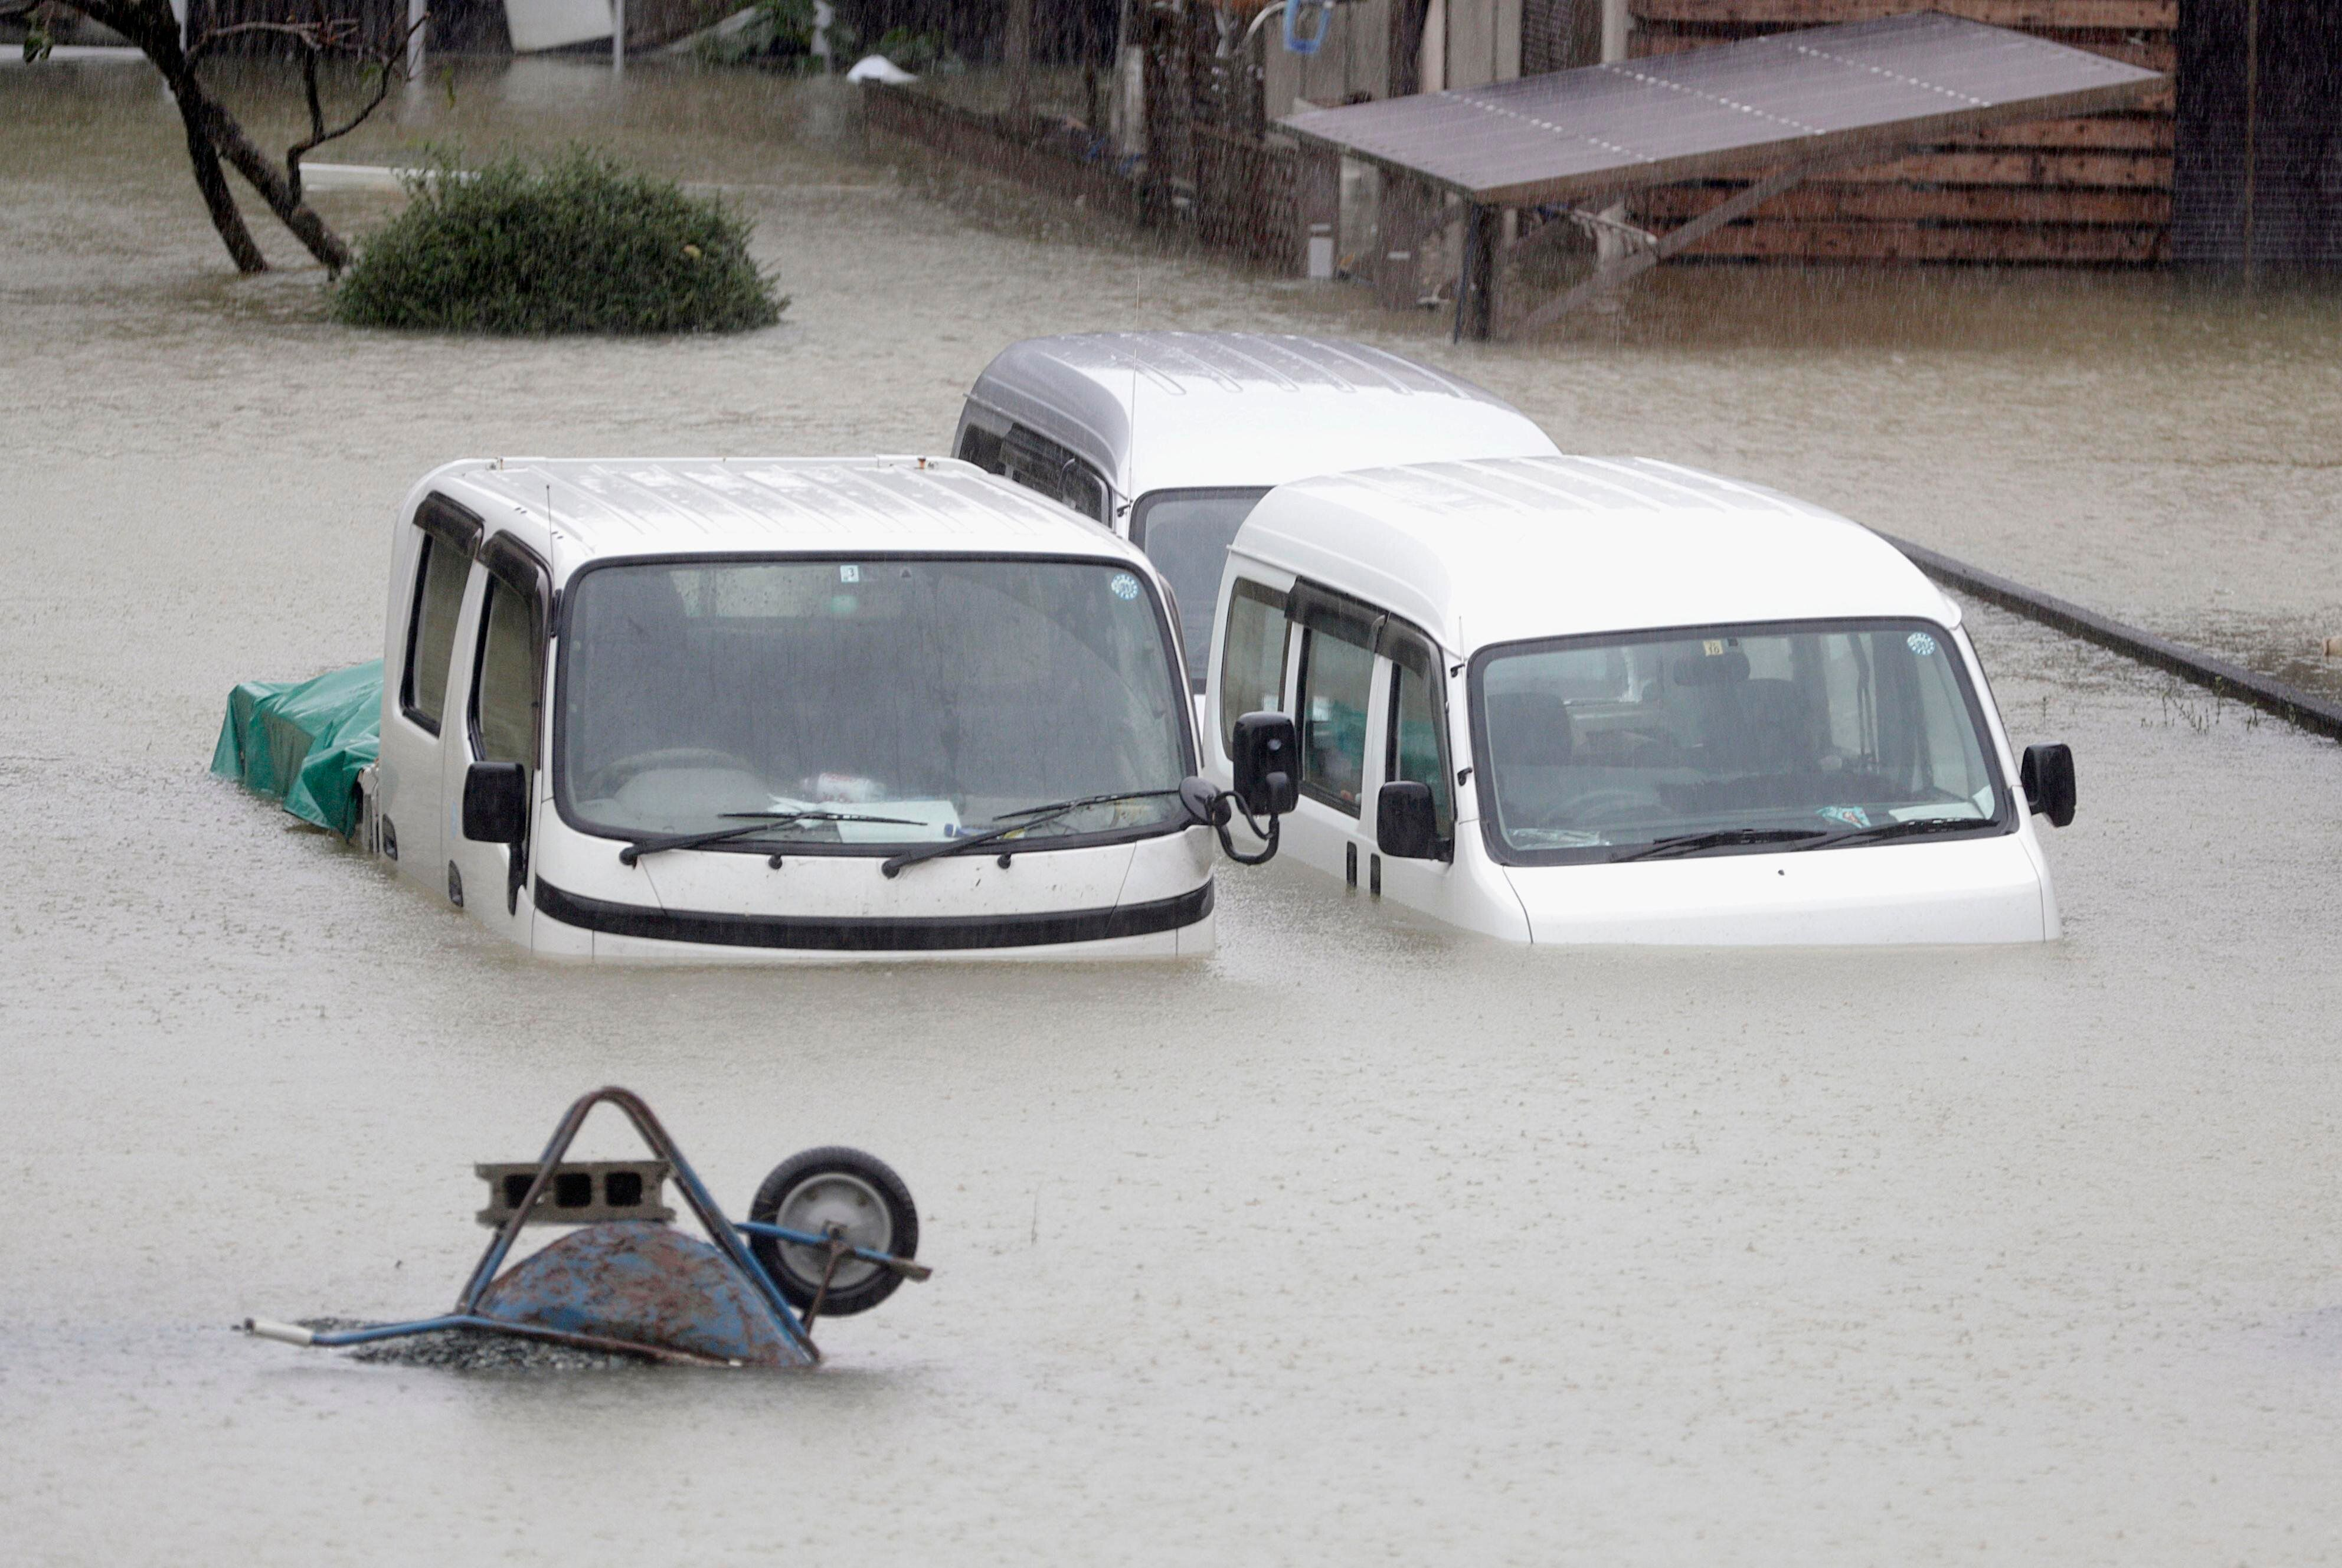 Cars sit submerged in water in the residential area hit by Typhoon Hagibis, in Ise, central Japan Saturday, Oct. 12, 2019. A